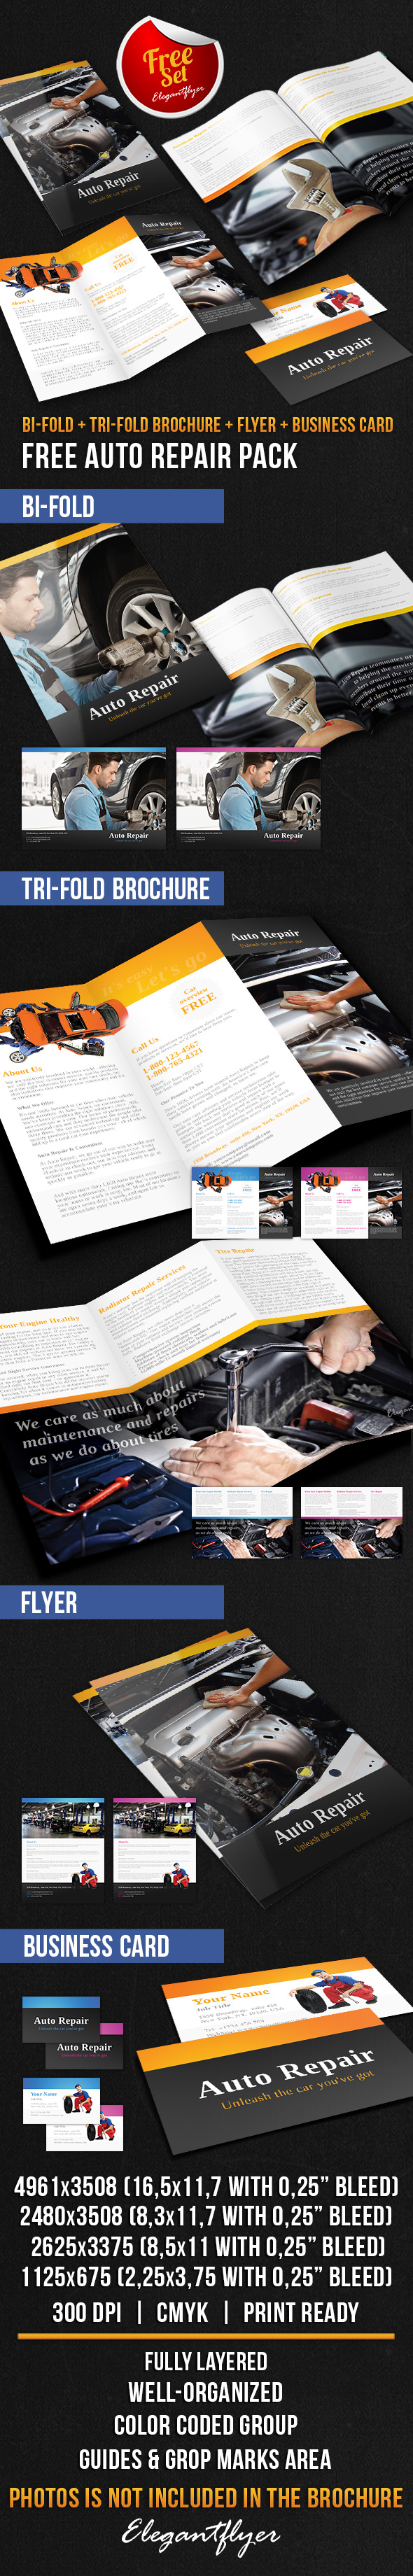 Bigpreview_auto-repair-brochure-pack-free-psd-template1